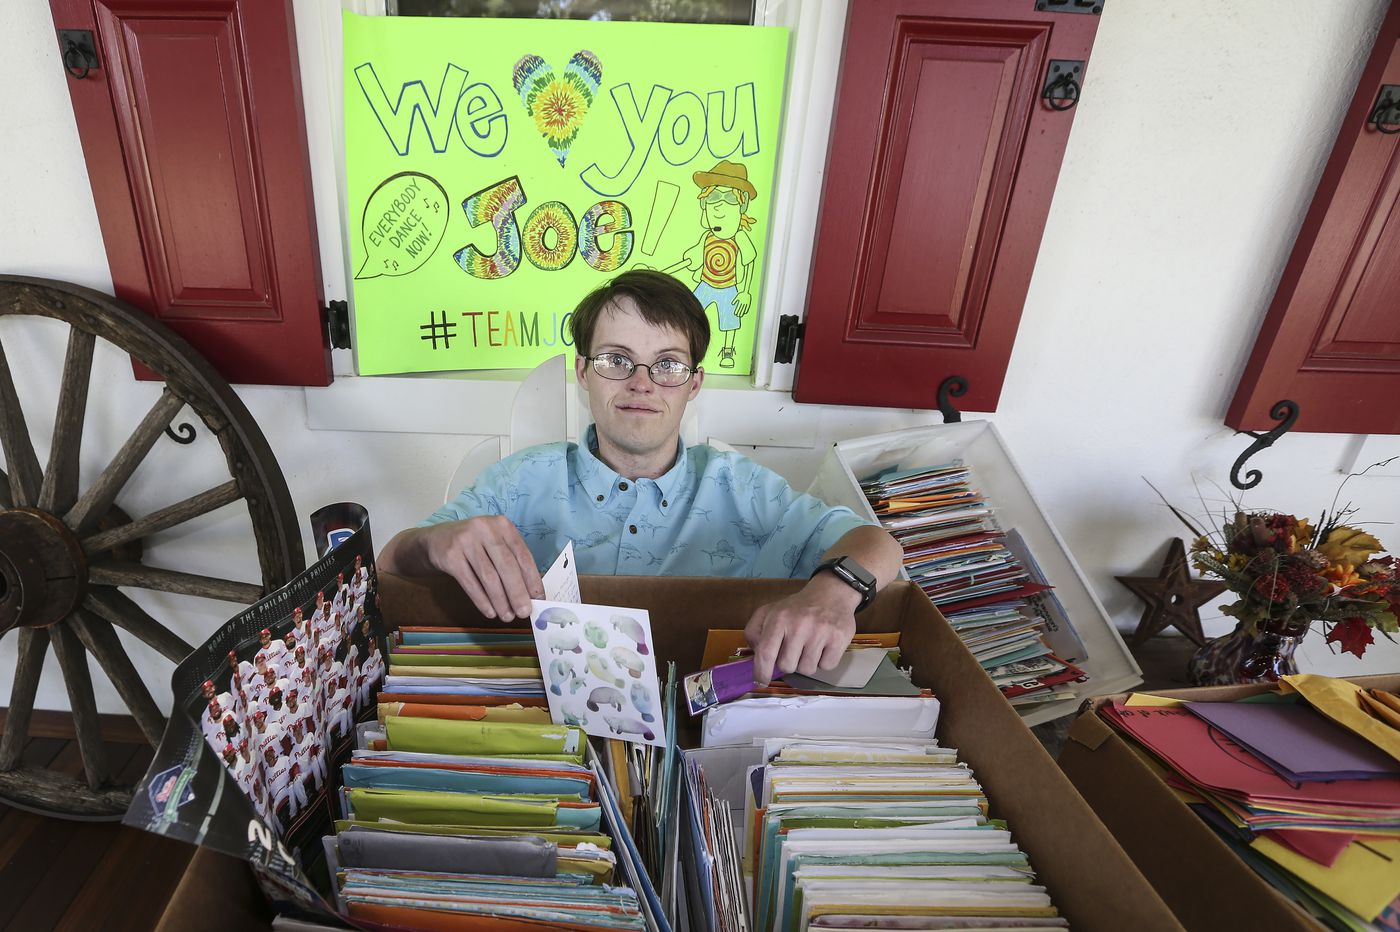 Skippack Man With Down Syndrome Awaiting Double-Organ Transplant Receives Thousands of Cards from Strangers